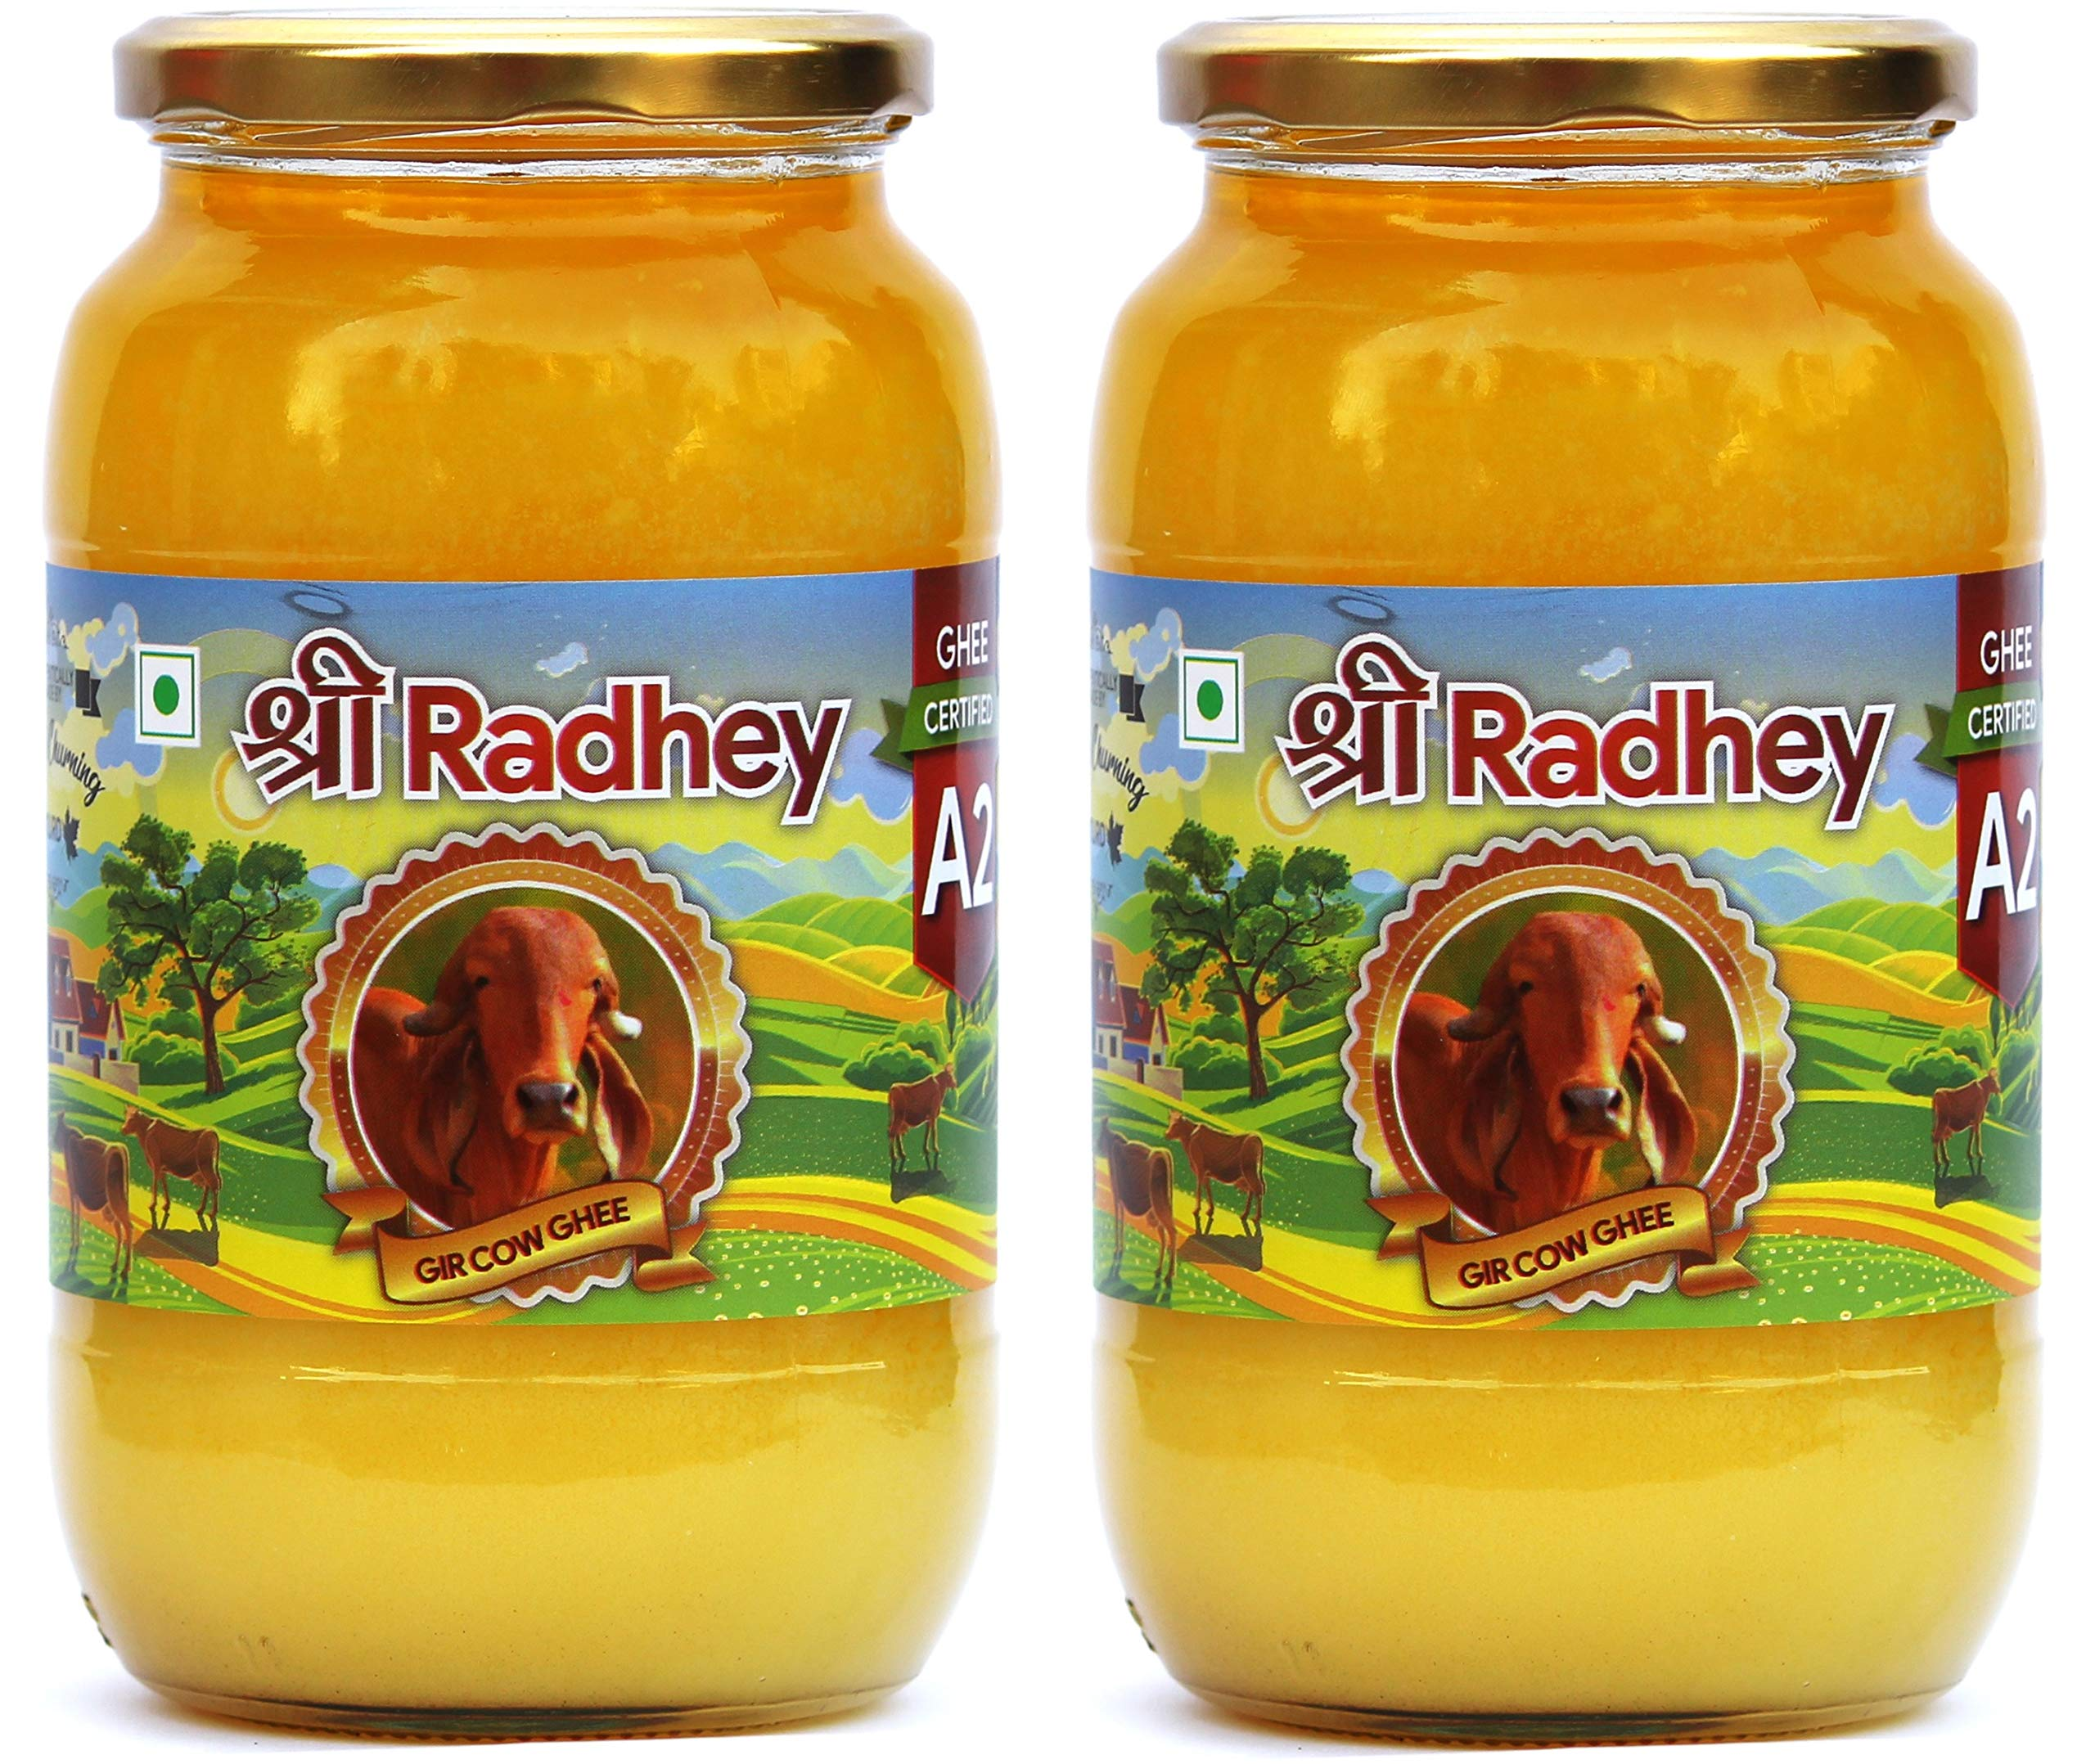 Shree Radhey Certified A2 Gir Cow Ghee - Gluten Free - (Traditionaly Hand Churned) (1000 ml X 2) by Shree Radhey (Image #1)